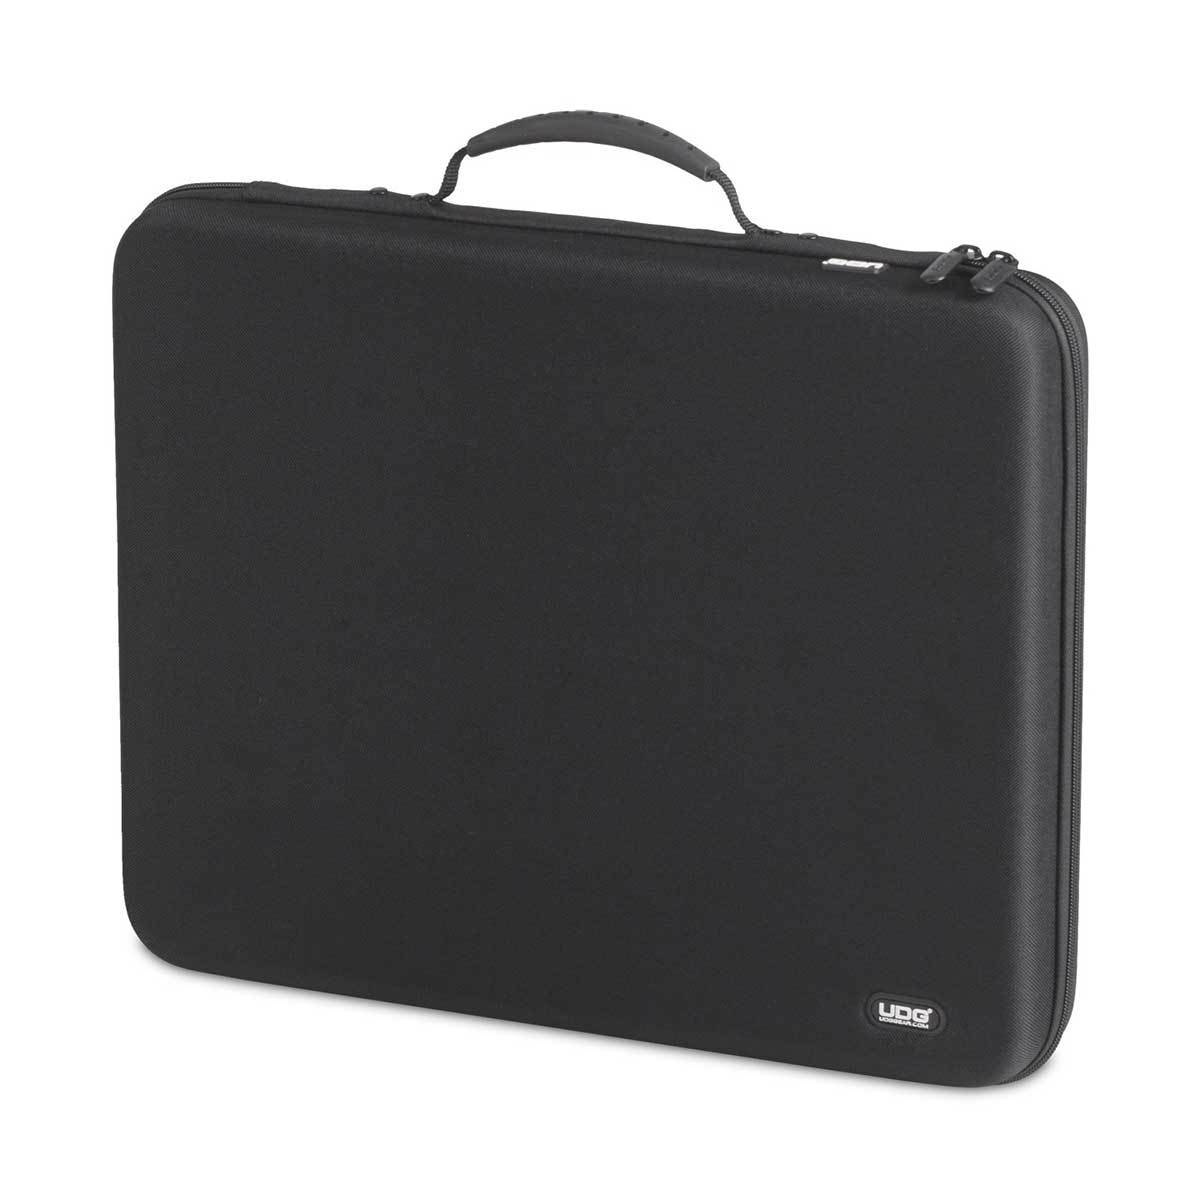 DJ Bags & Cases - UDG Creator Ableton Push 2 Hardcase Black